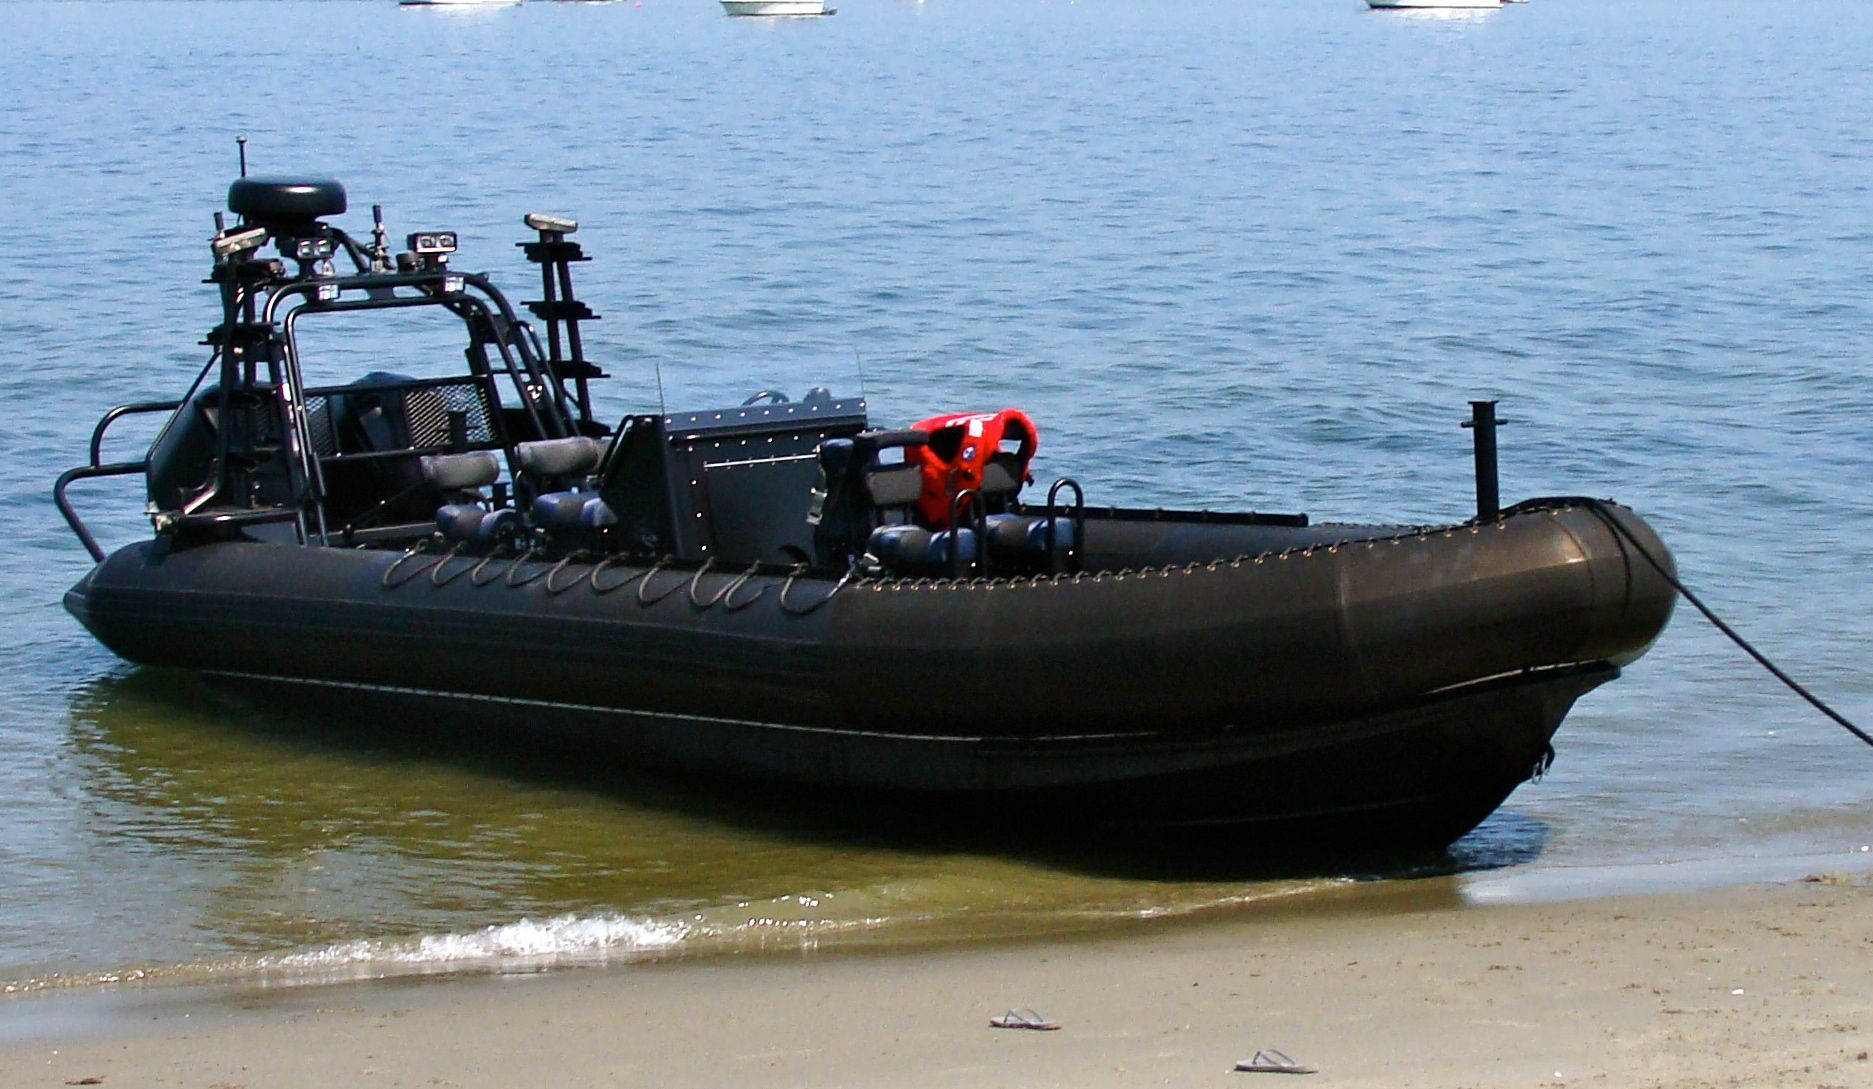 Titan Boats Raptor. Bound for L.A. County Sheriff's ERT team. Boat 2 of 3.